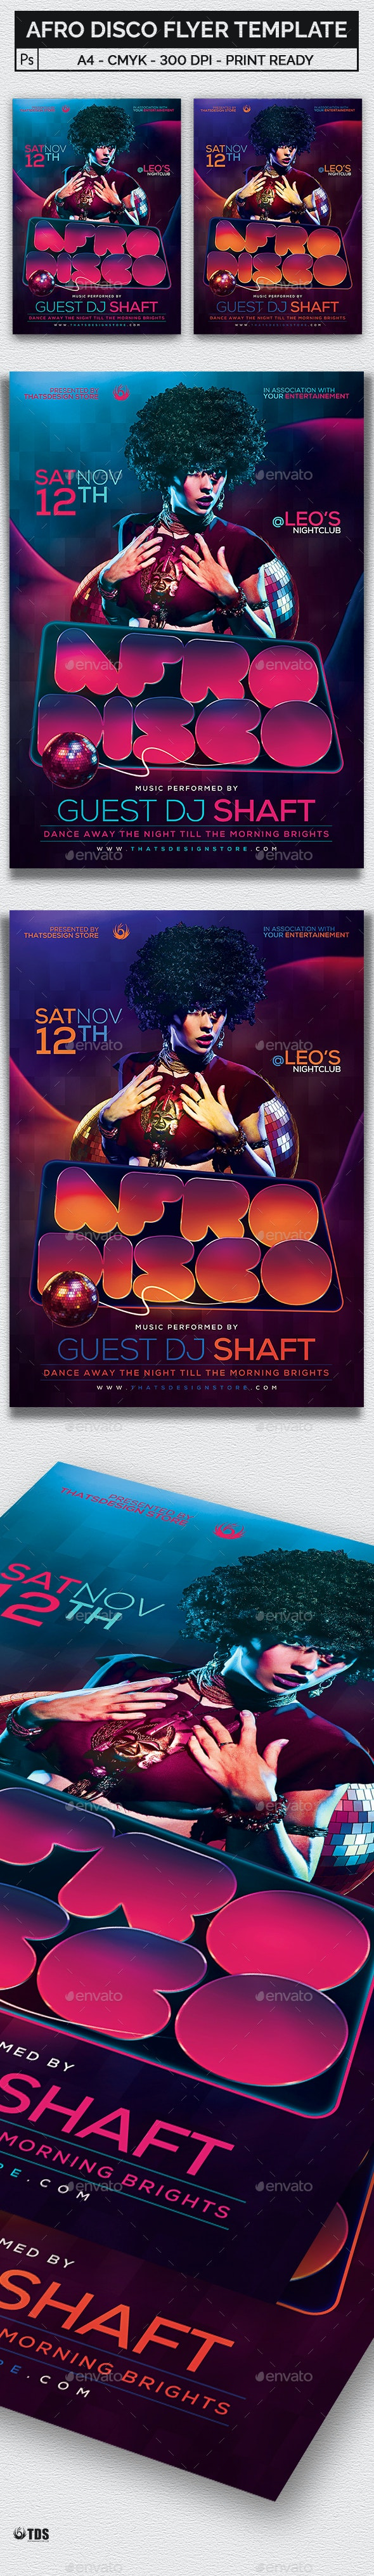 Afro Disco Flyer Template - Clubs & Parties Events